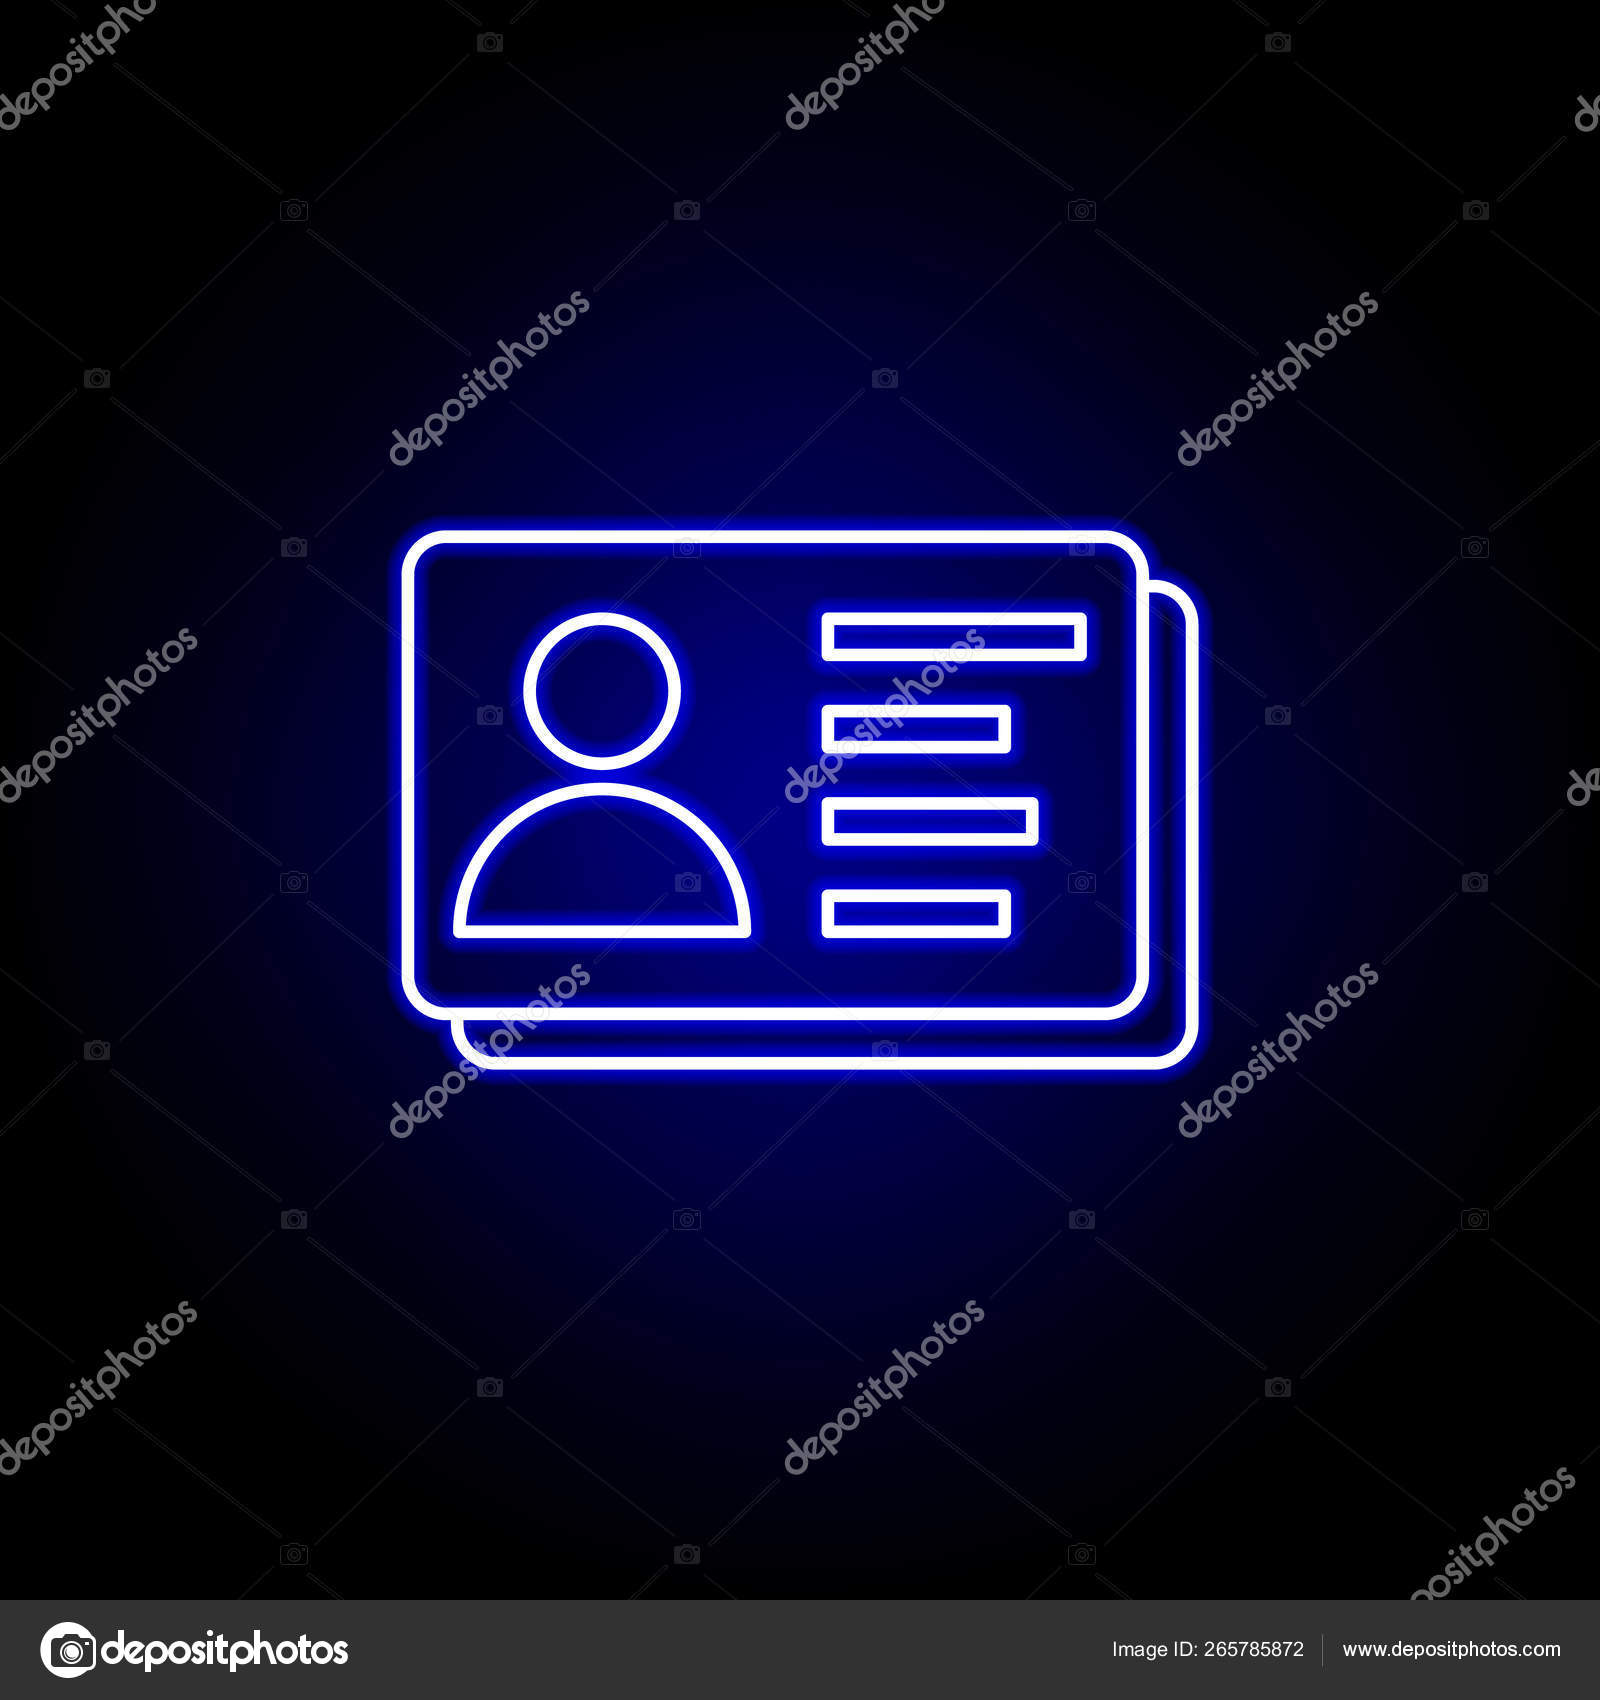 Database, human resources, icon  Elements of Human resources